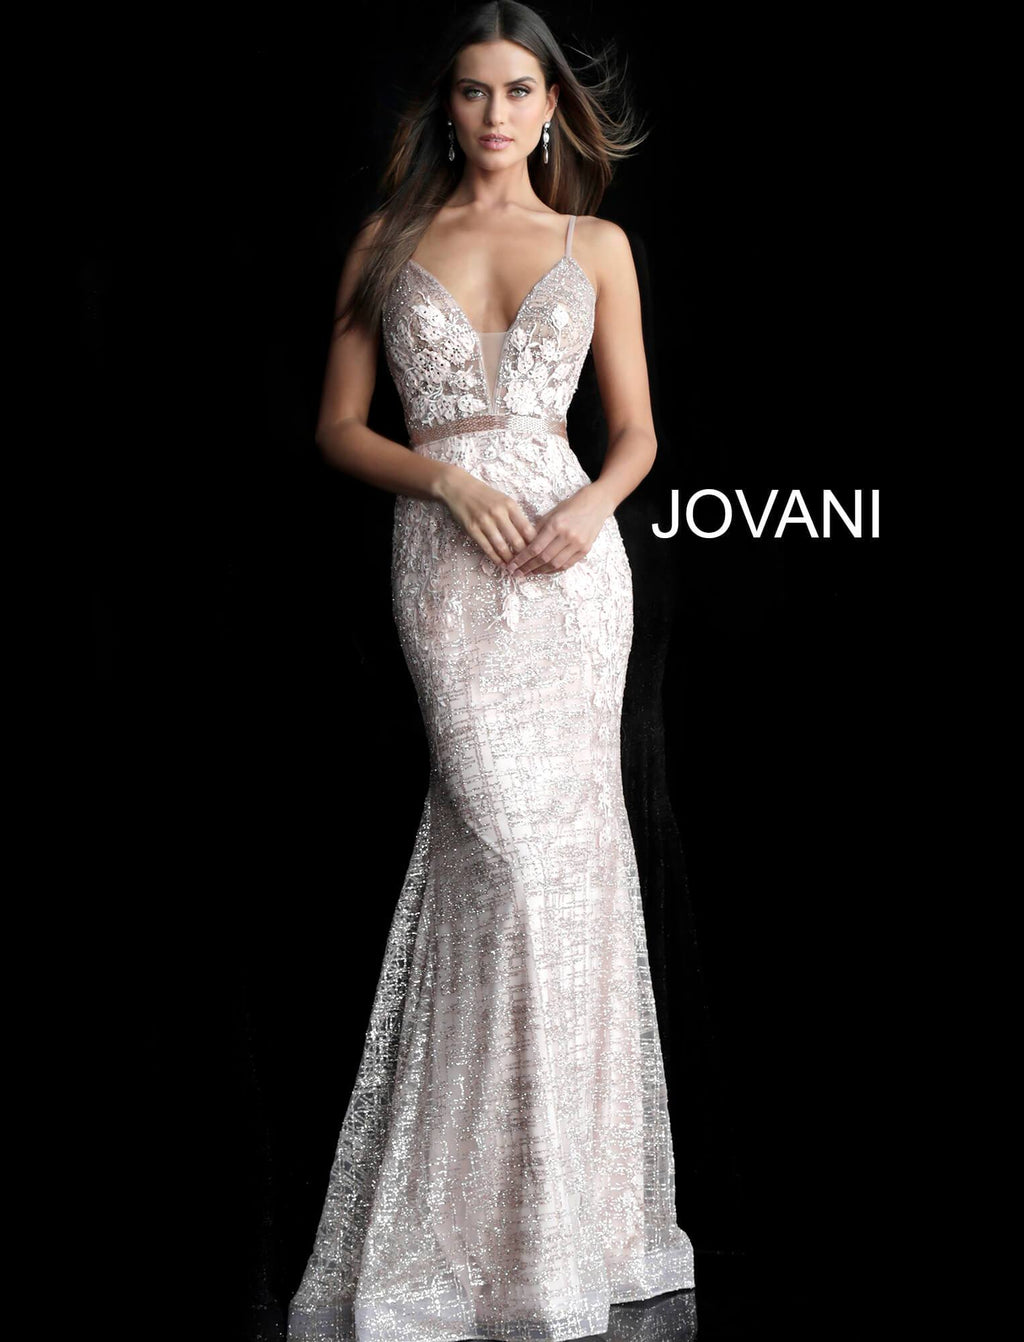 Jovani Rose Gold Mermaid Prom Dress